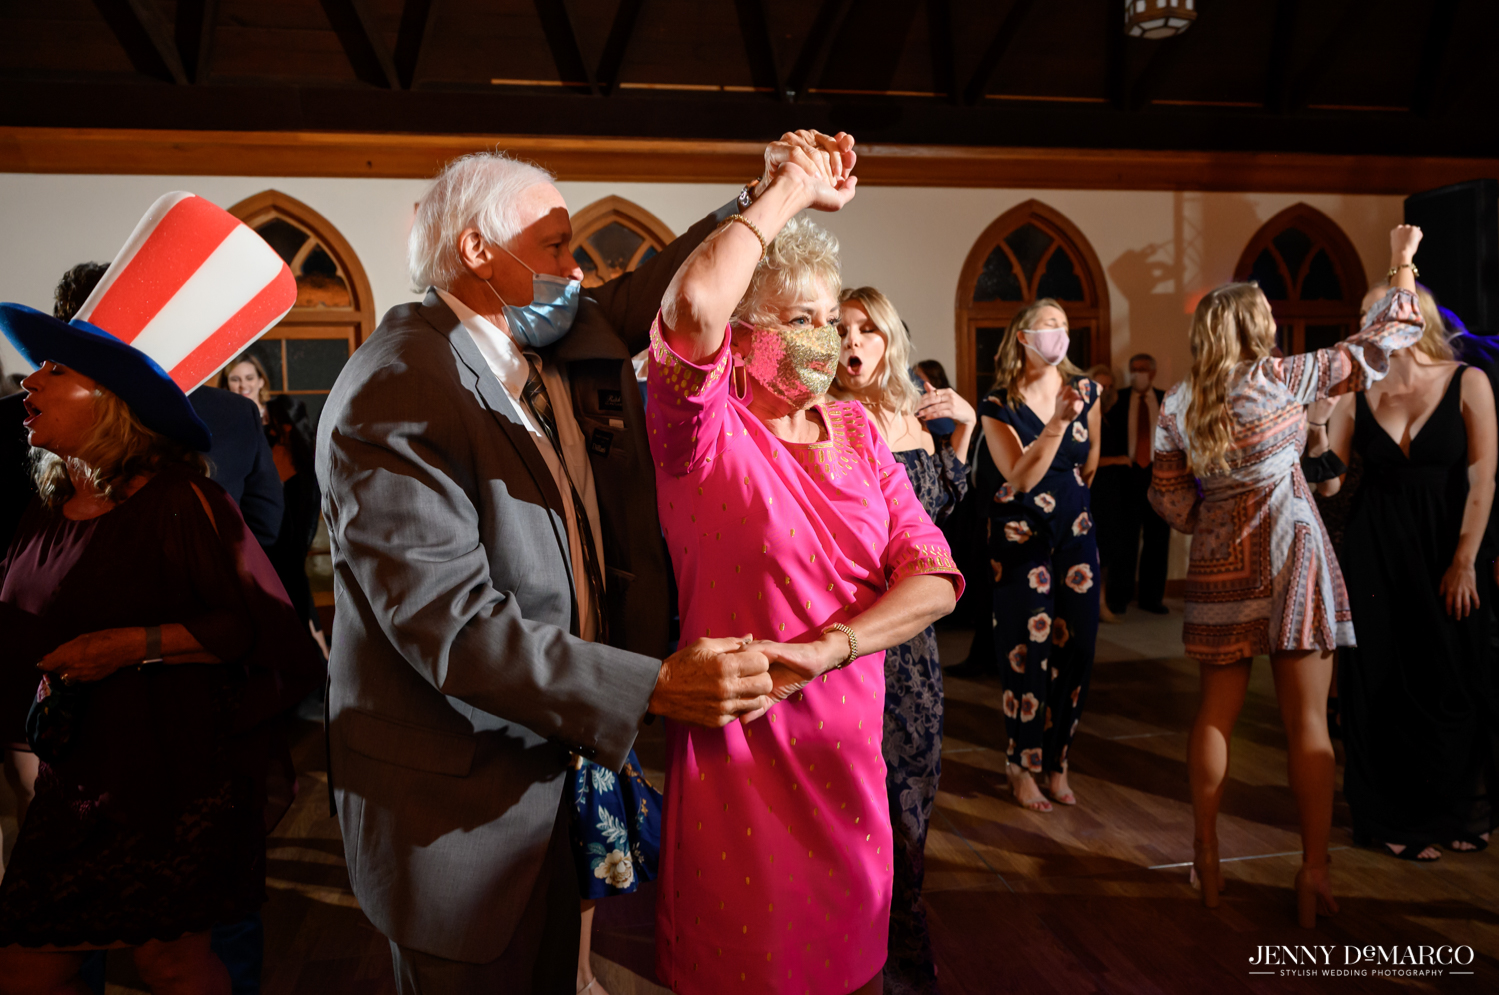 grandparents twirling and dancing at the wedding celebration